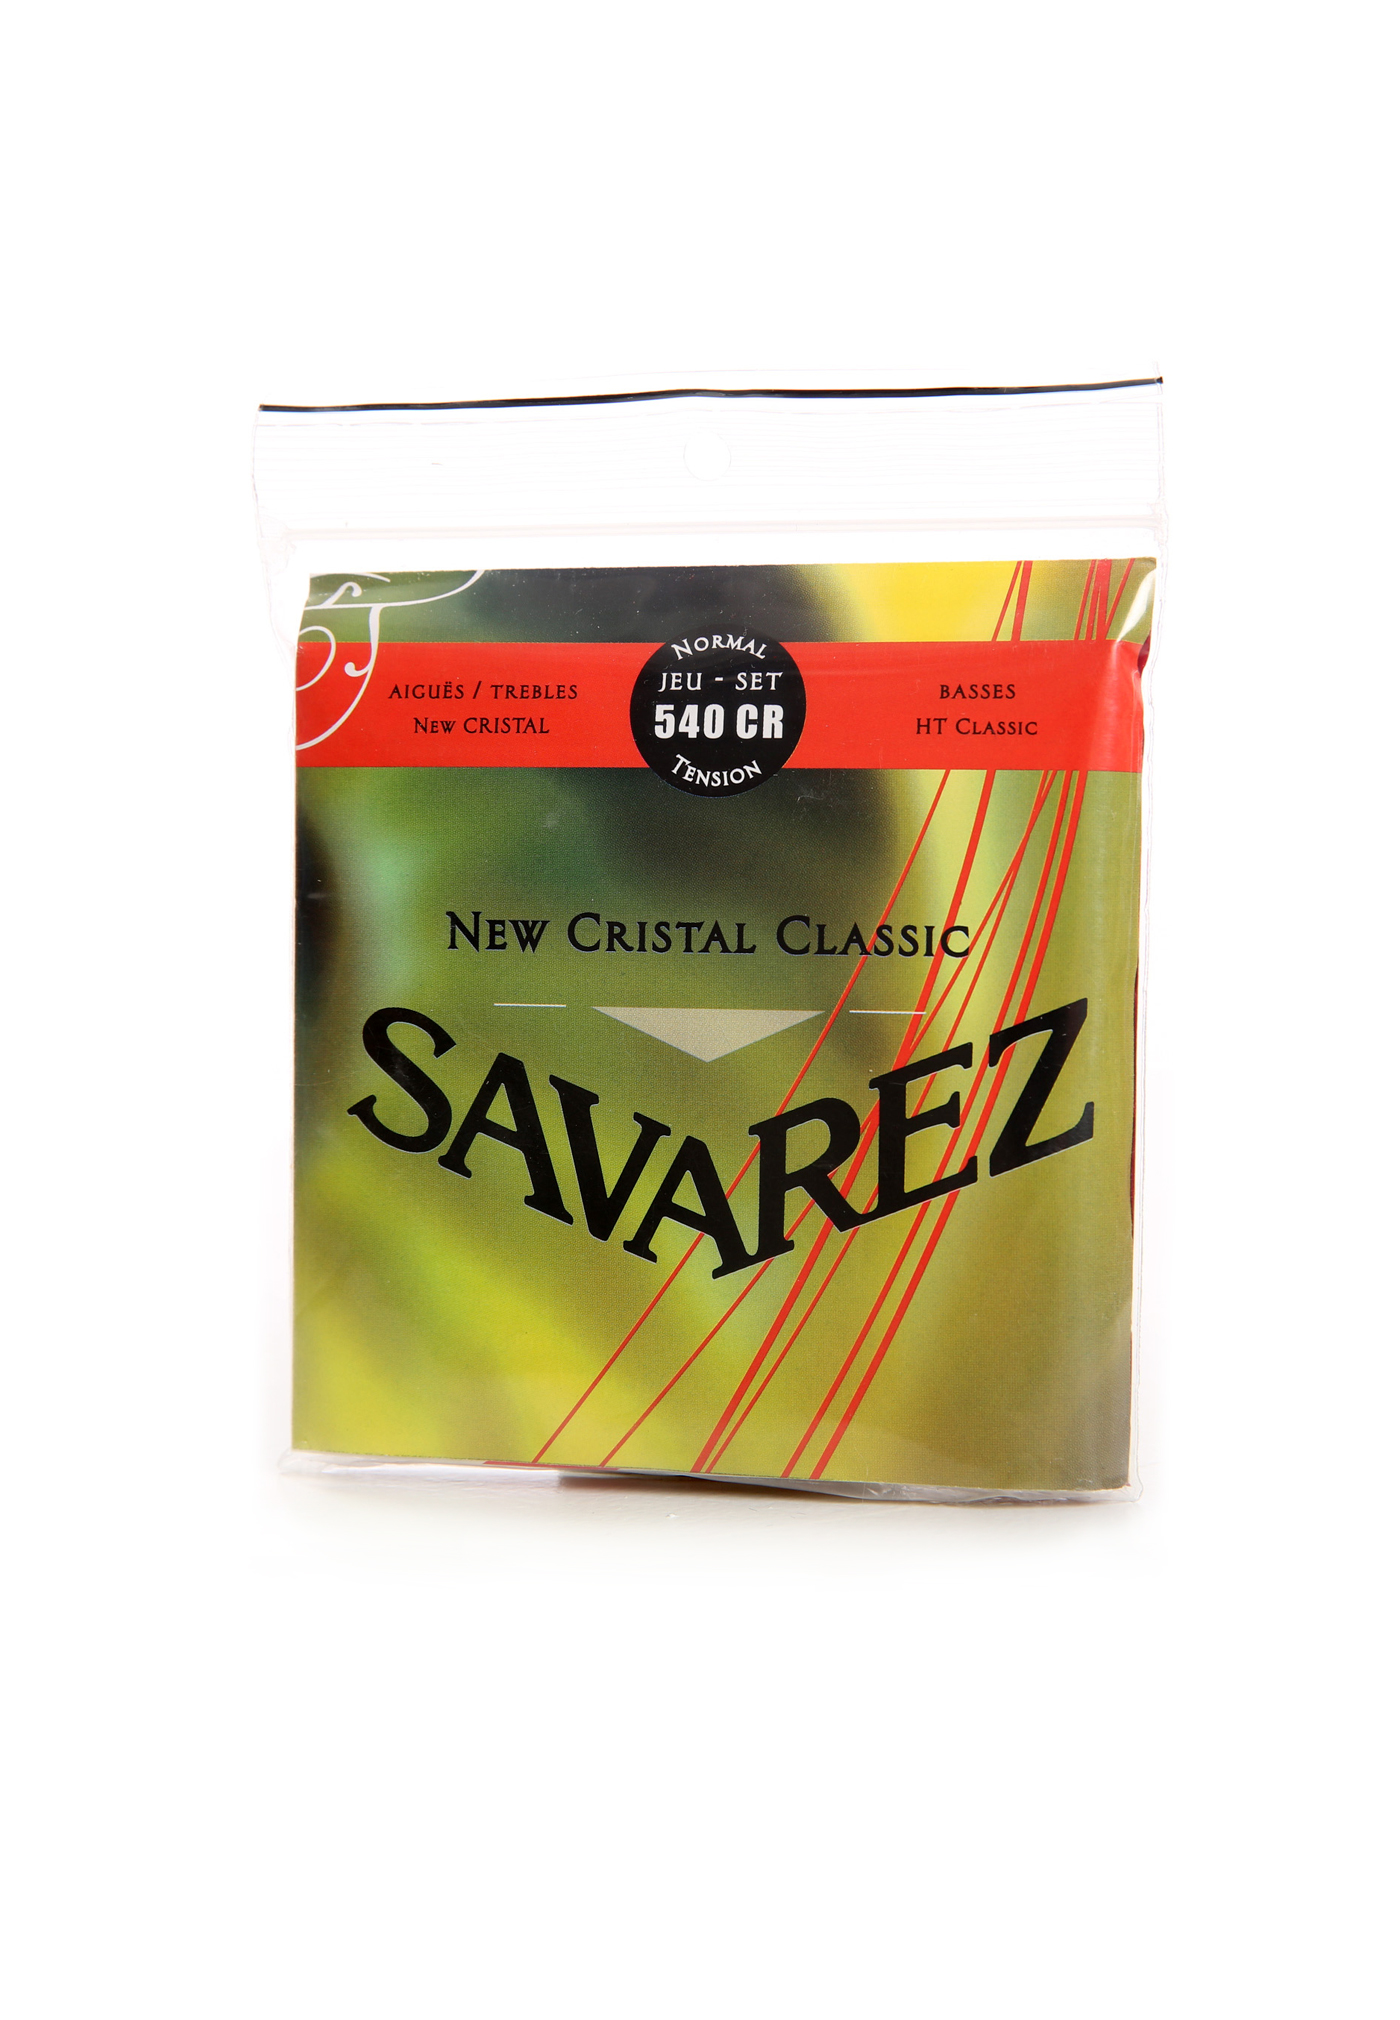 Savarez guitar strings 540 CR normal tension